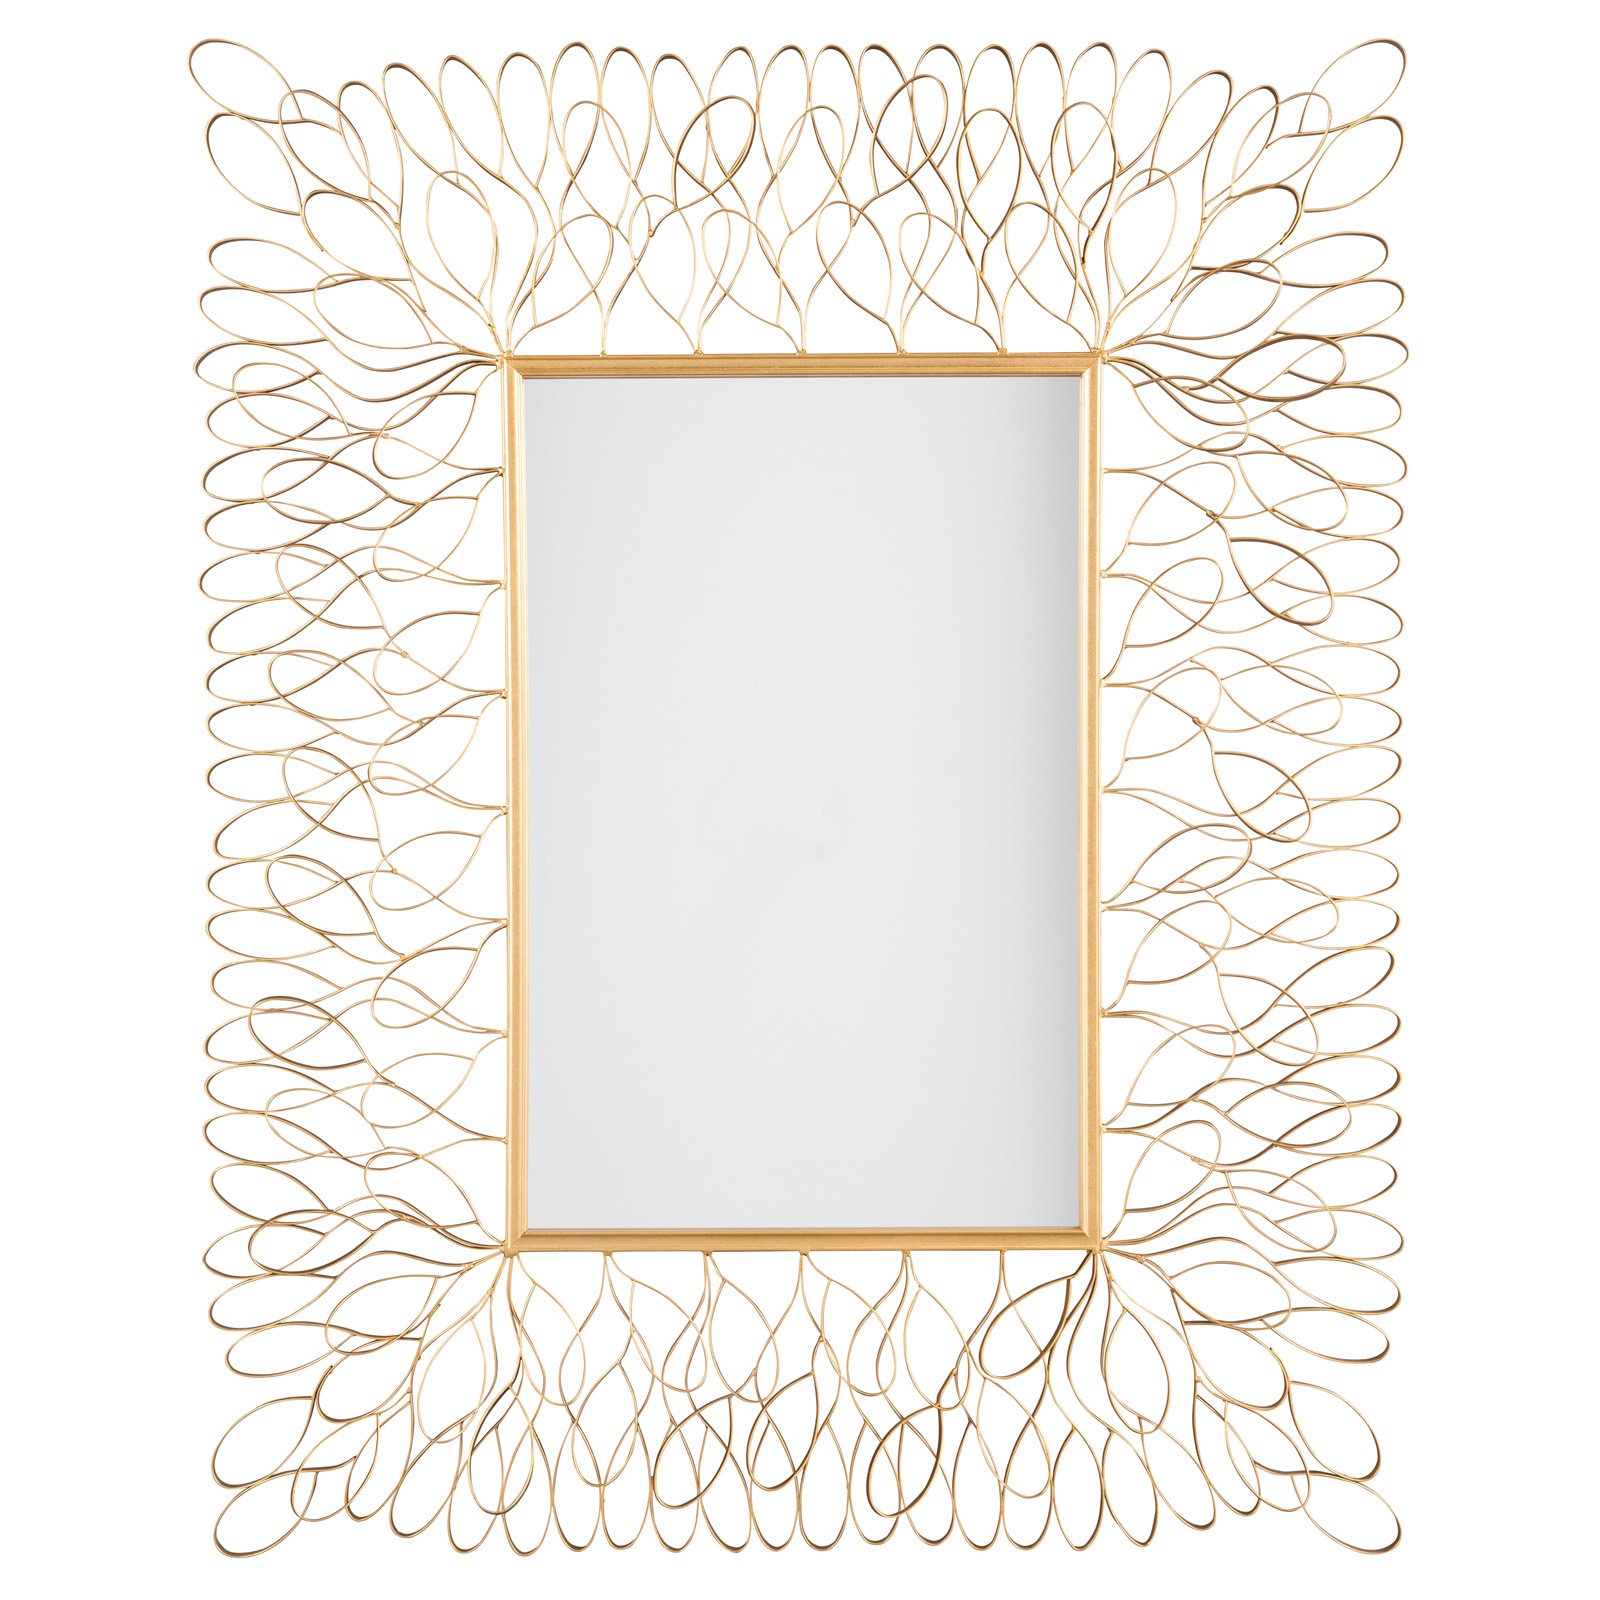 Signature Design by Ashley Ogdon Accent Wall Mirror - 39.75W x 50H in.